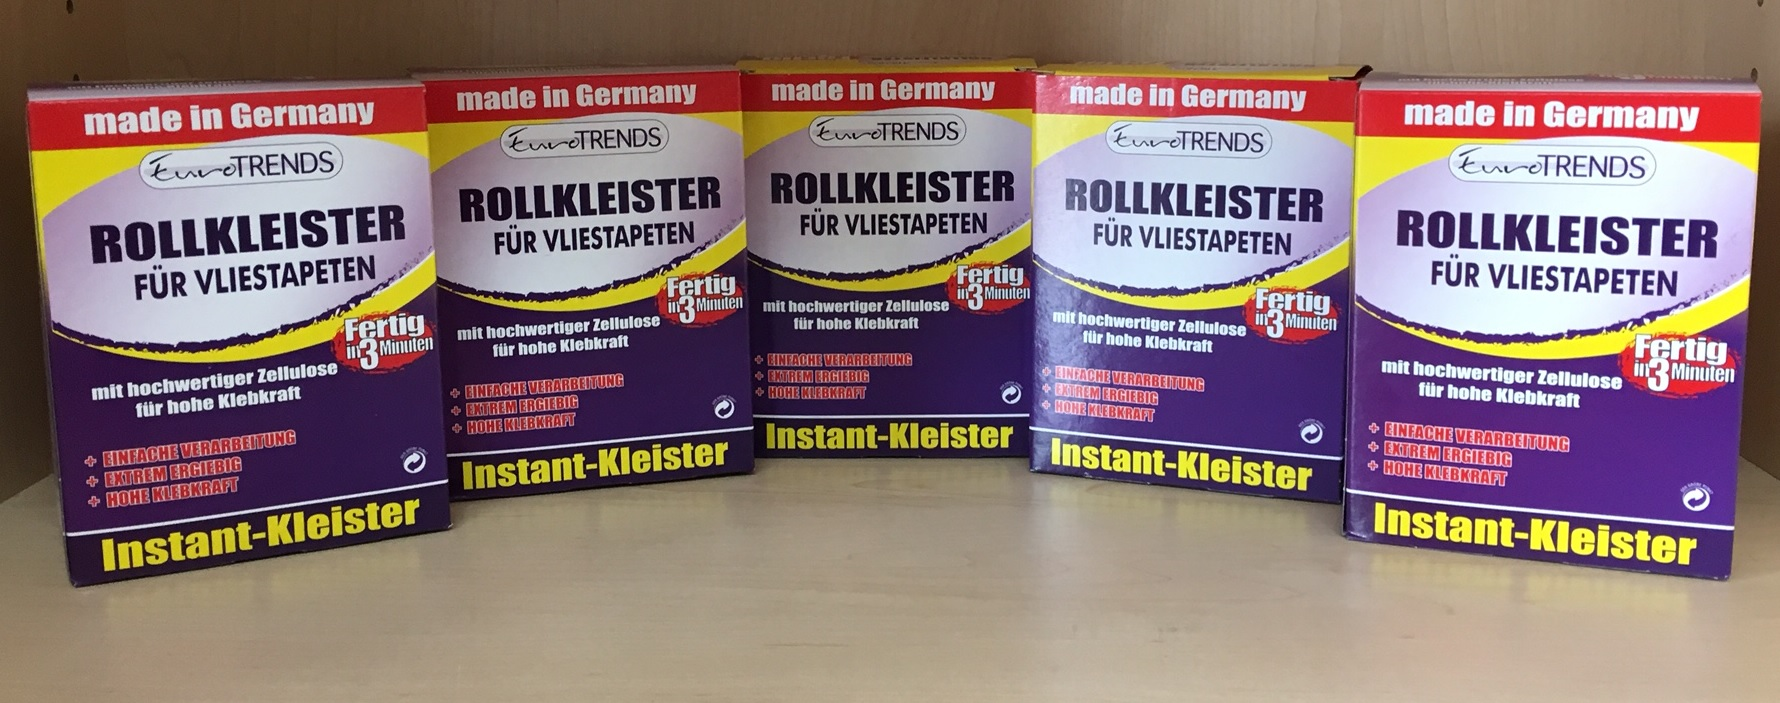 1 kg rollkleister 5 x 200g kleister f r vliestapete ebay. Black Bedroom Furniture Sets. Home Design Ideas